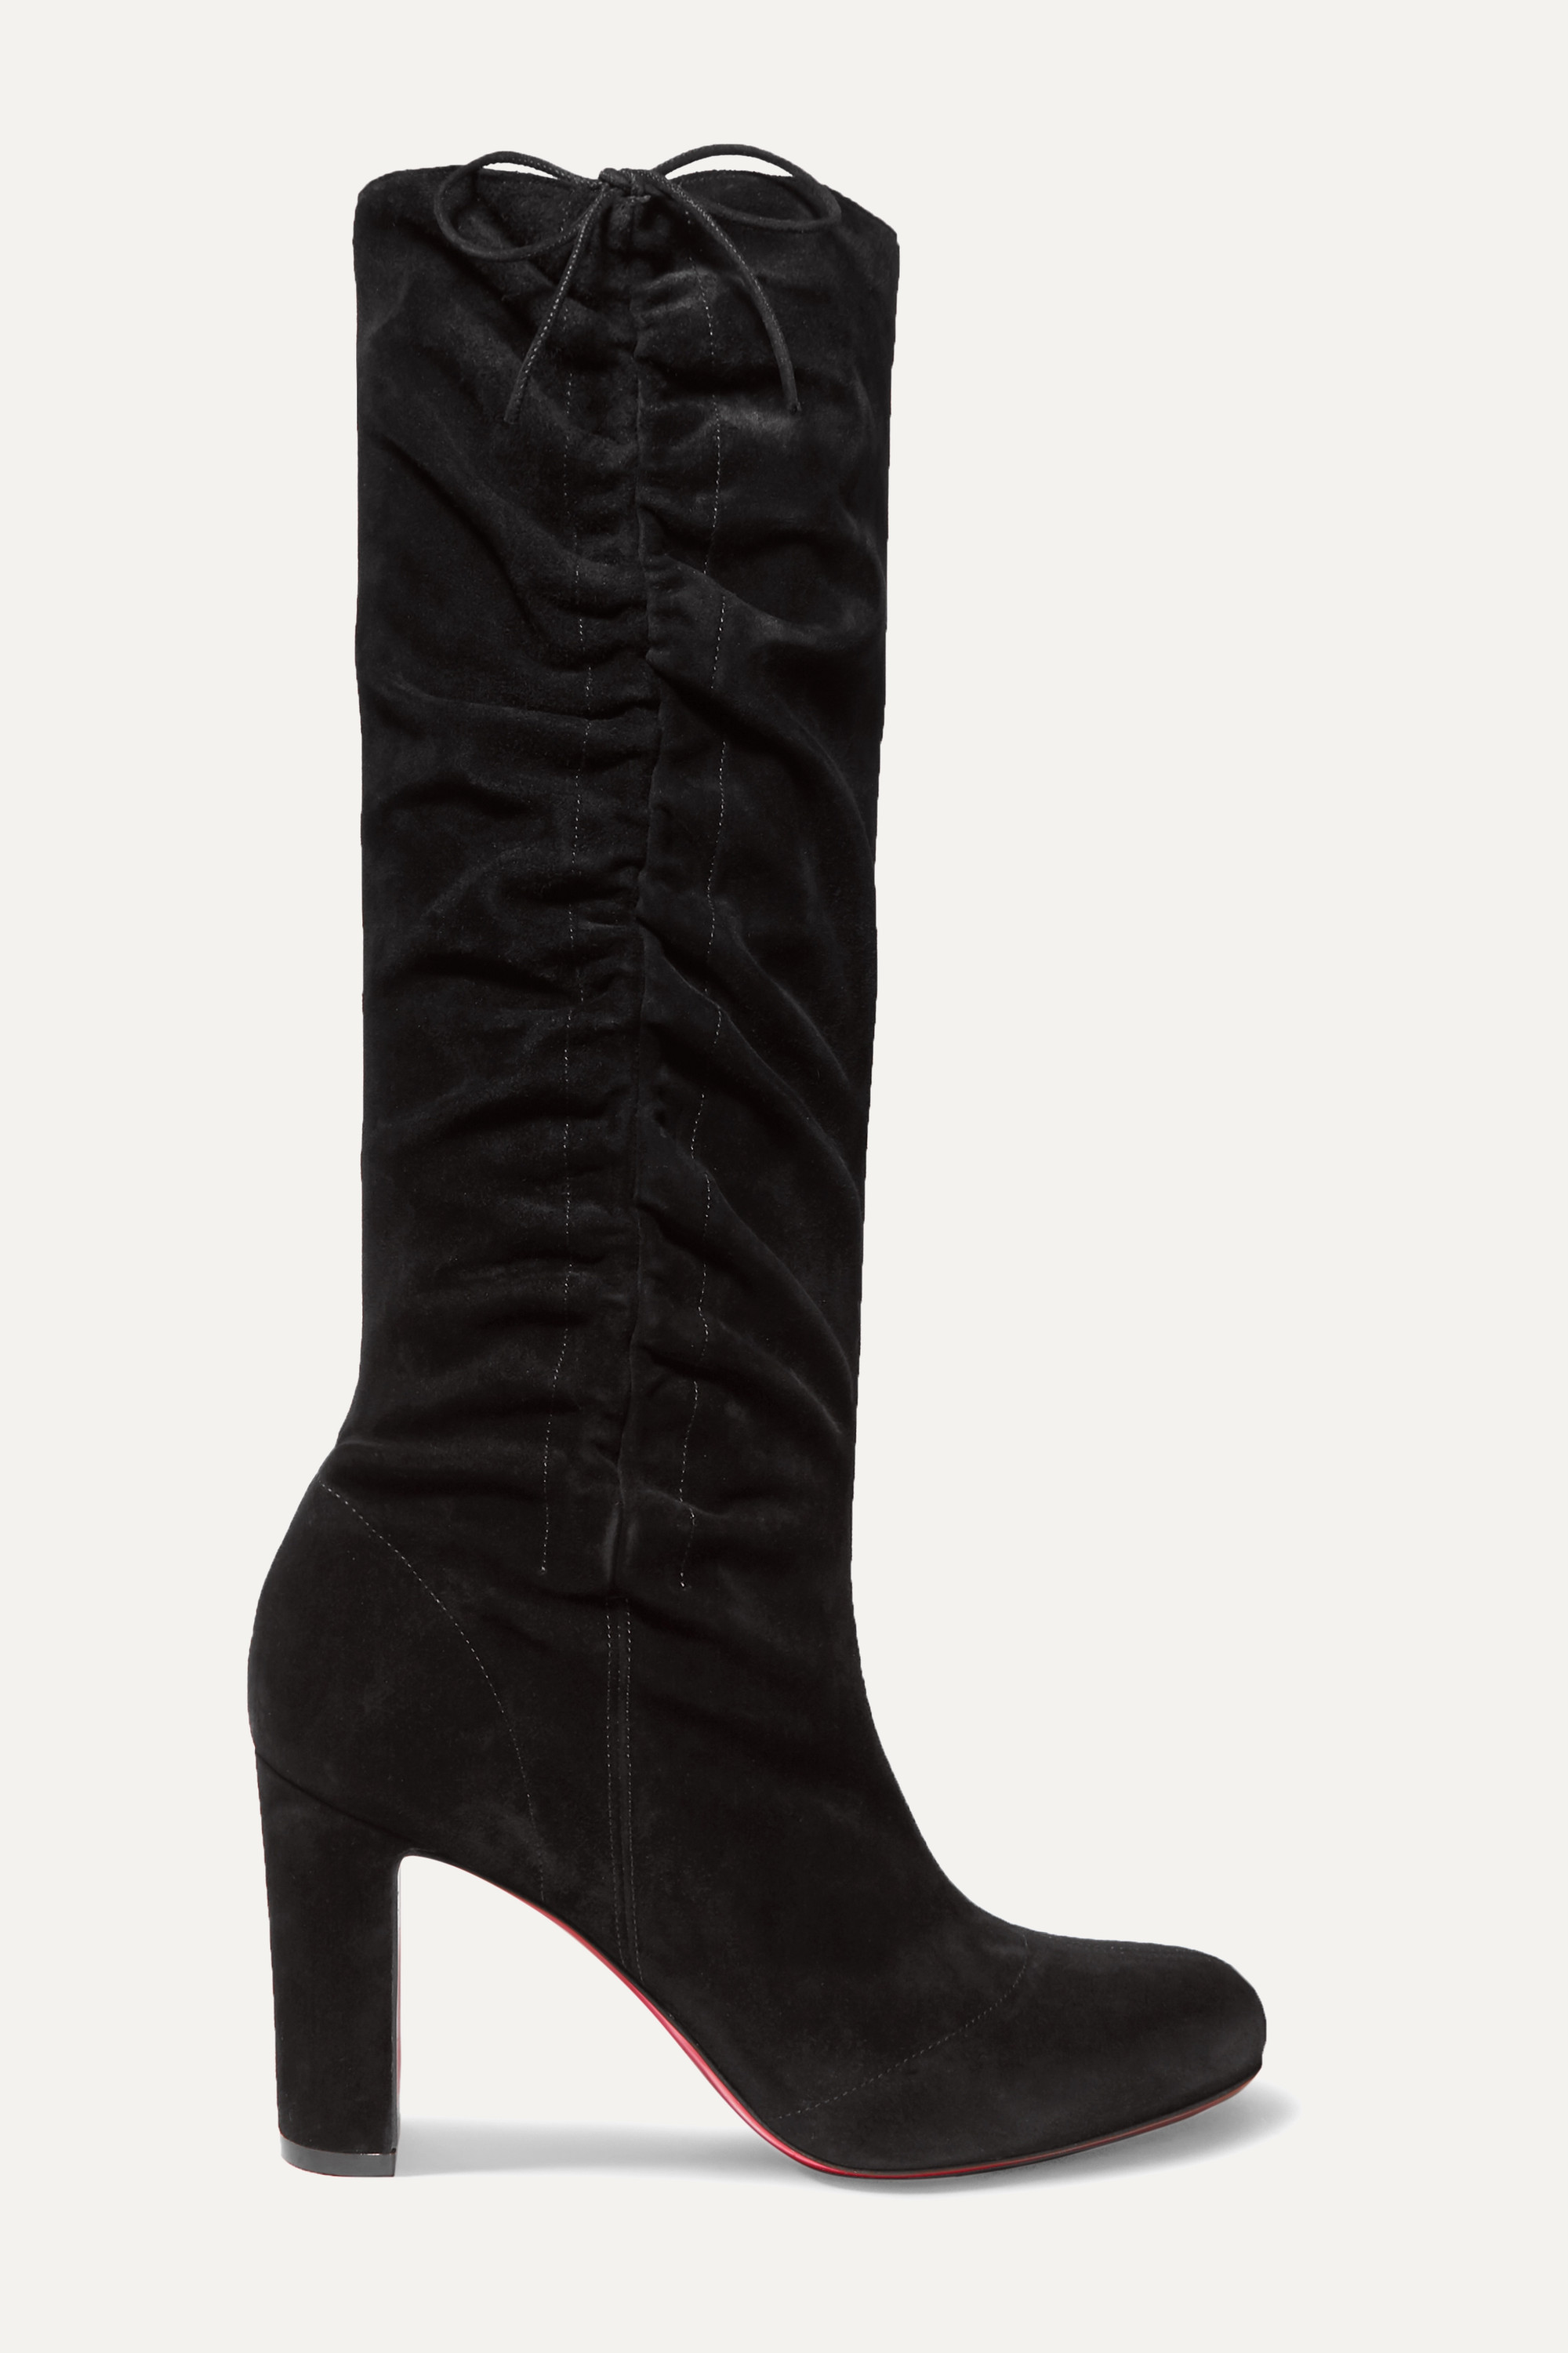 Christian Louboutin Douce 85 ruched suede knee boots